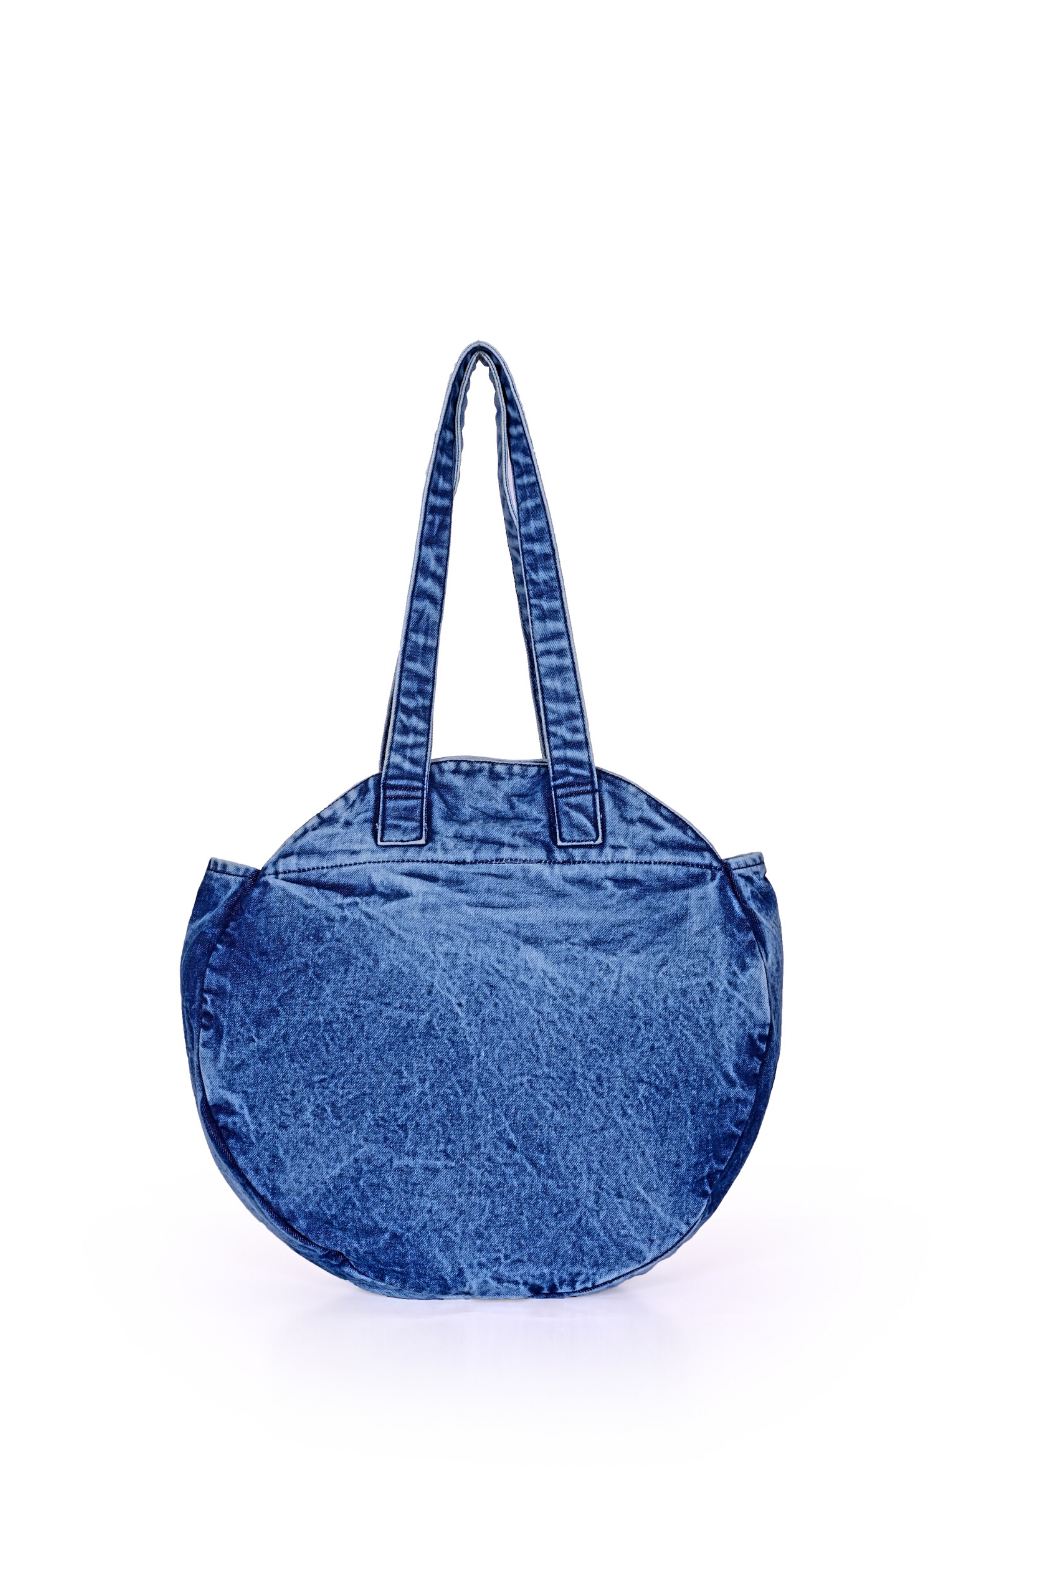 America & Beyond Dress Blues Denim Round Tote - Front Cropped Image